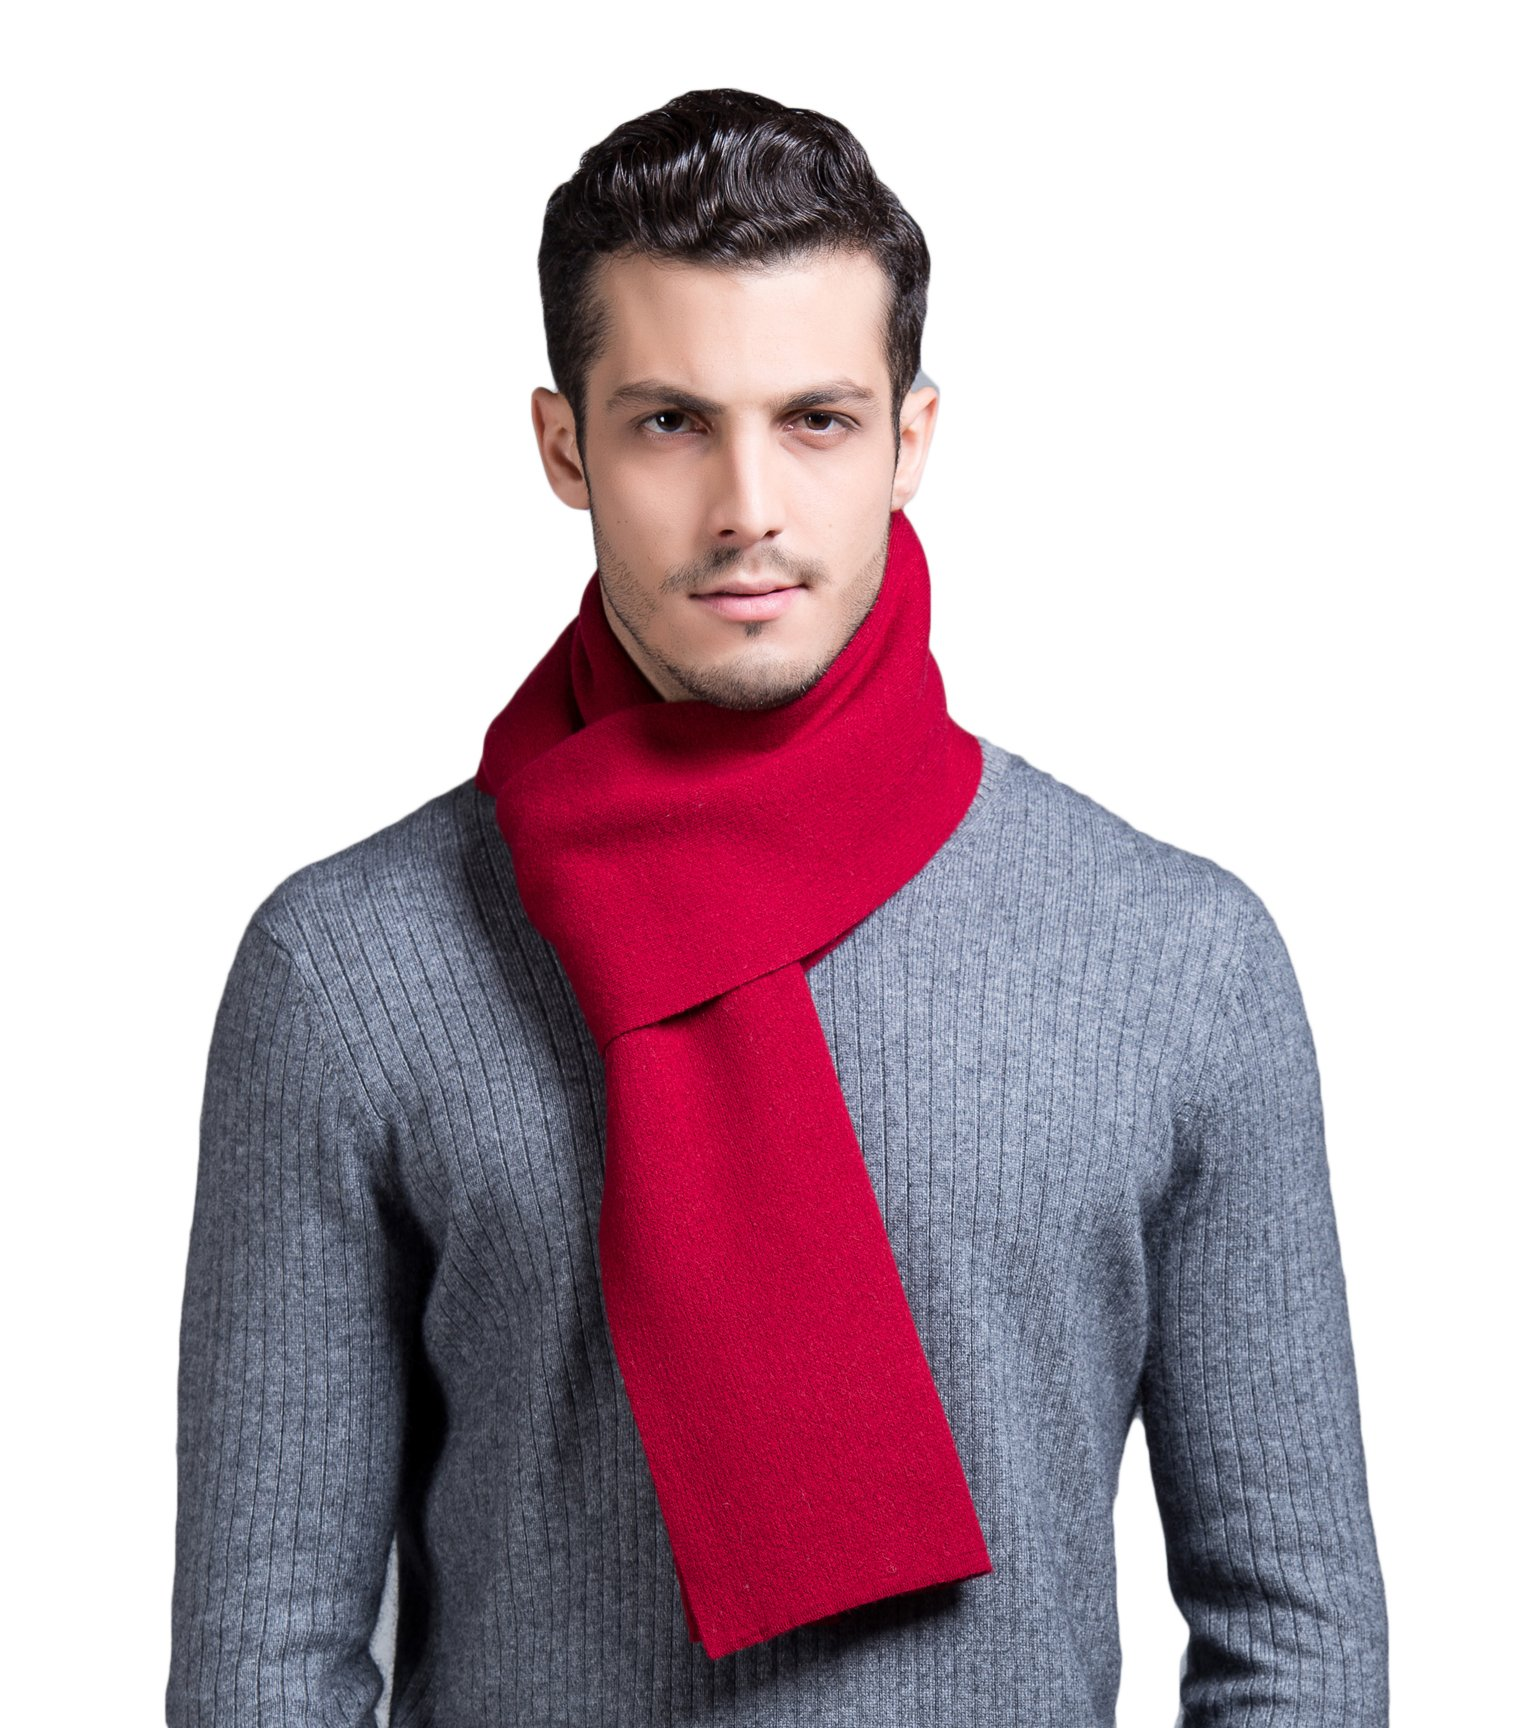 RIONA Men's 100% Australian Merino Wool Scarf Knitted Soft Warm Neckwear with Gift Box(Red)